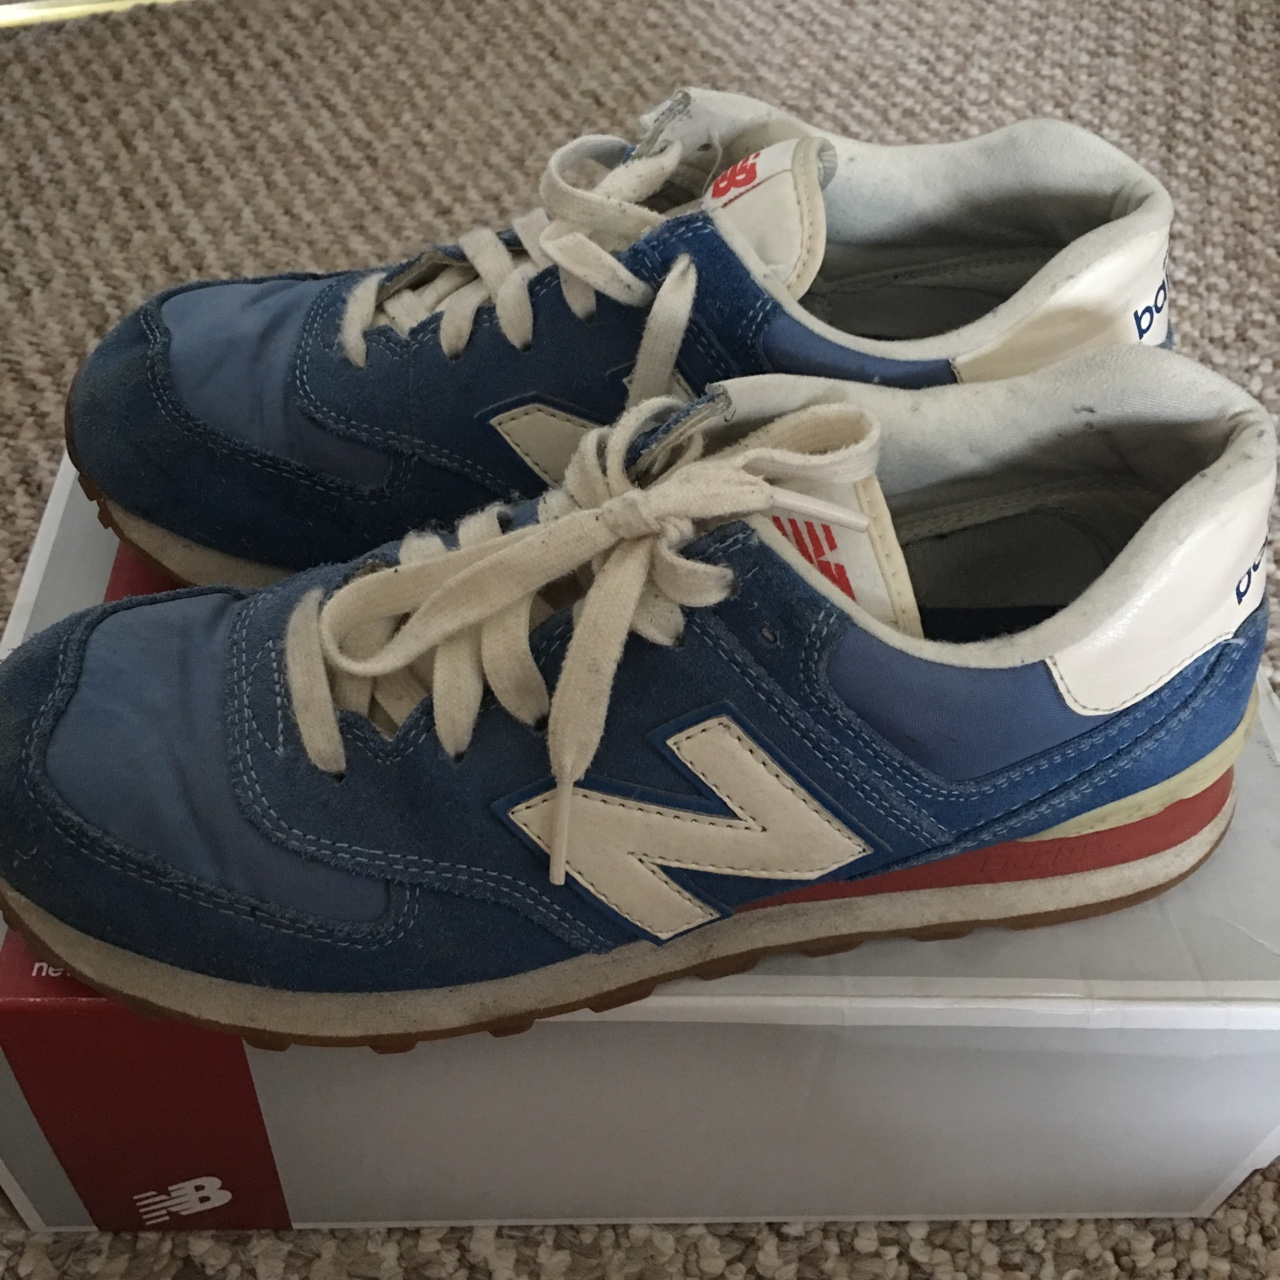 quality design ab40f a00d2 New balance 574 70s pack special edition. These are... - Depop